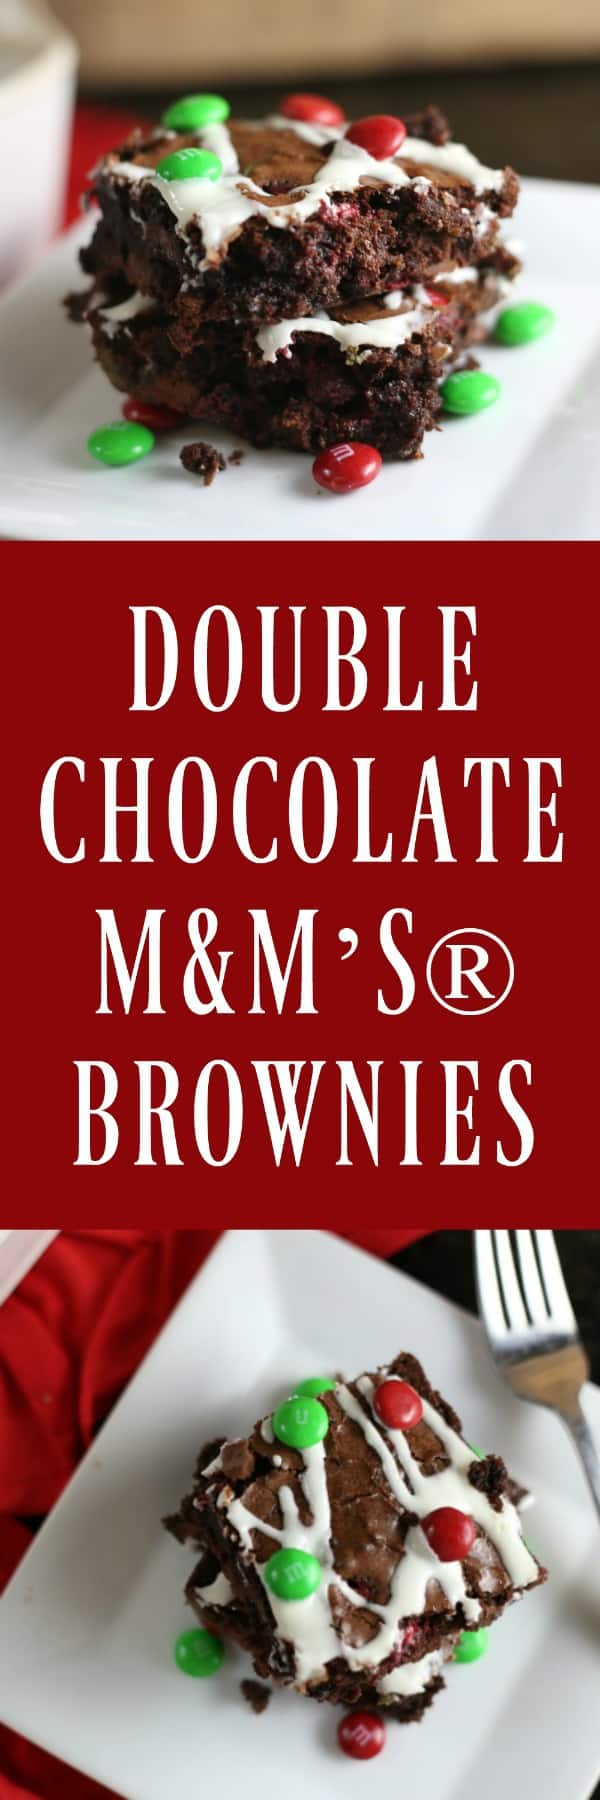 Double Chocolate M&M'S® Brownies by RoseBakes.com #ad #CollectiveBias #BakeintheFun